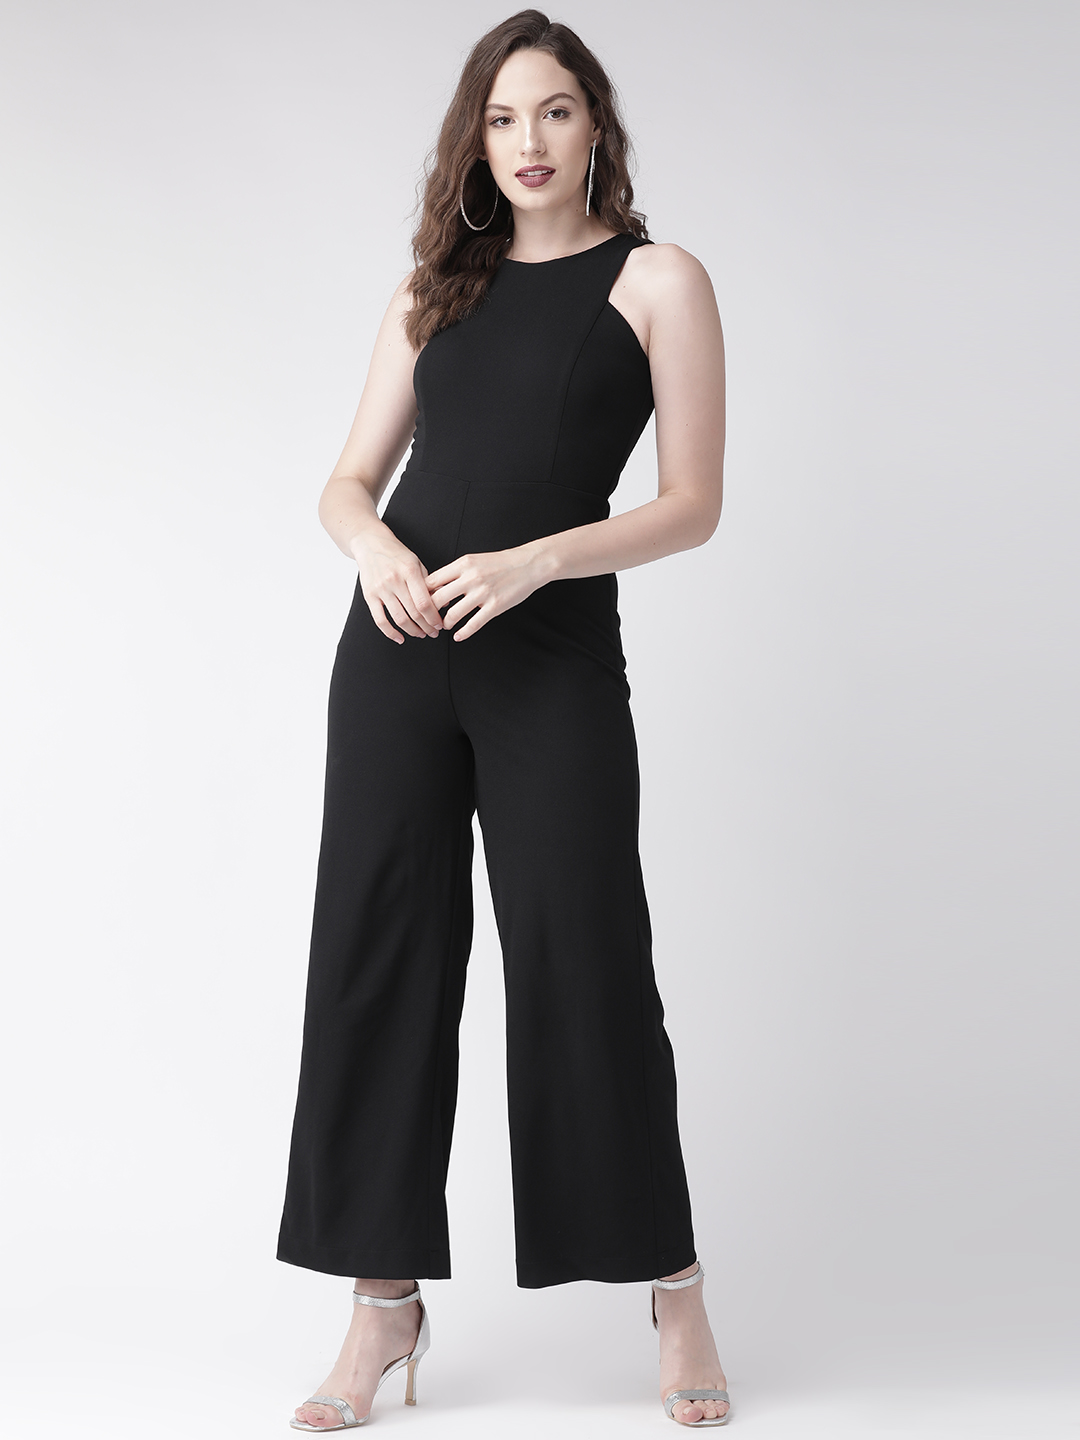 Jumpsuits-Welcome To The Party Jumpsuit3